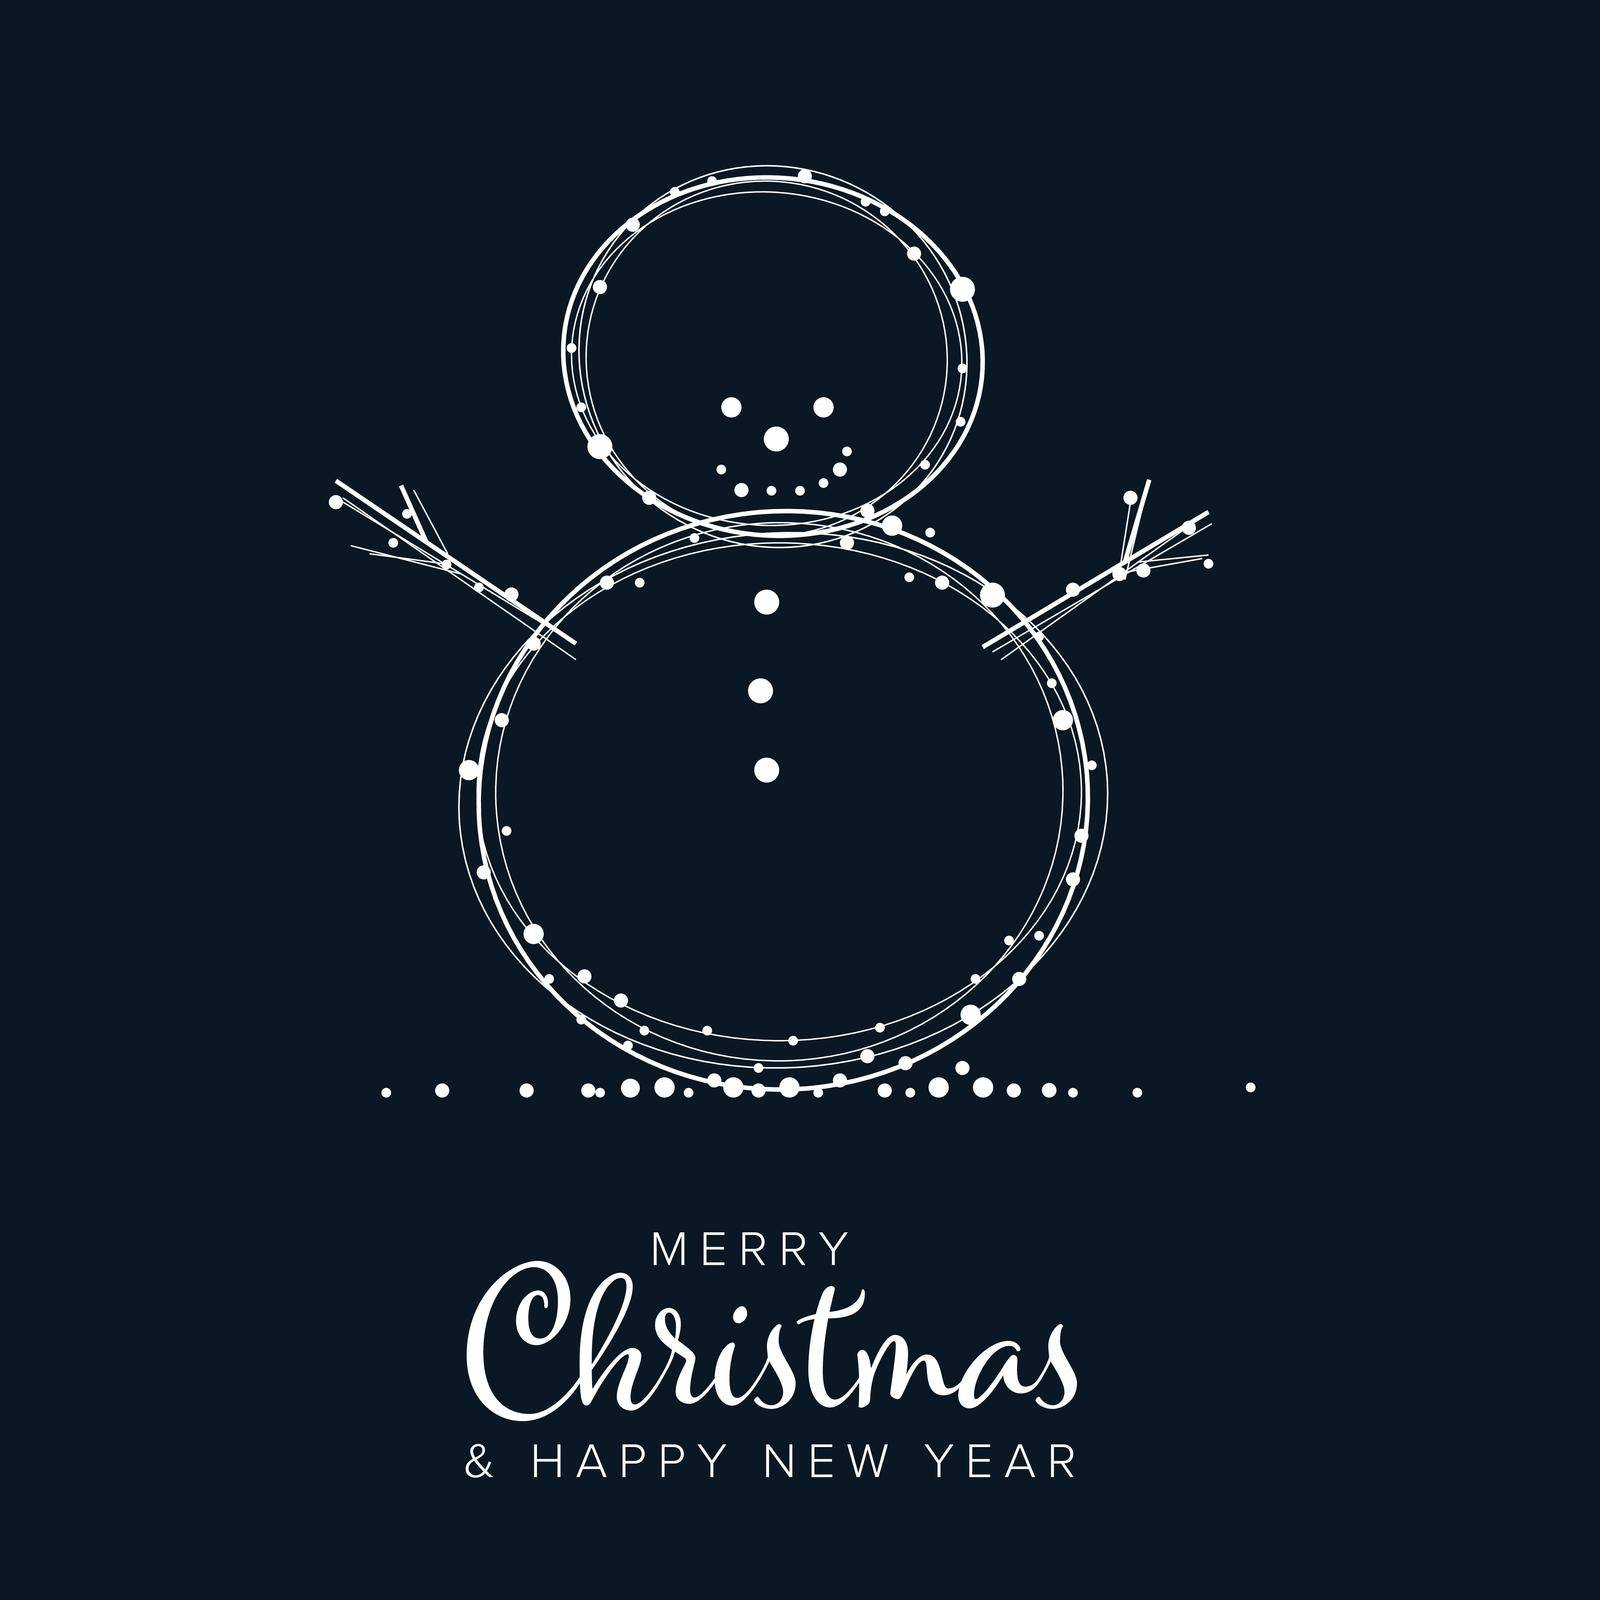 Minimalist Christmas flyer  card temlate with white snowflakes on a snowman shape and dark blue background